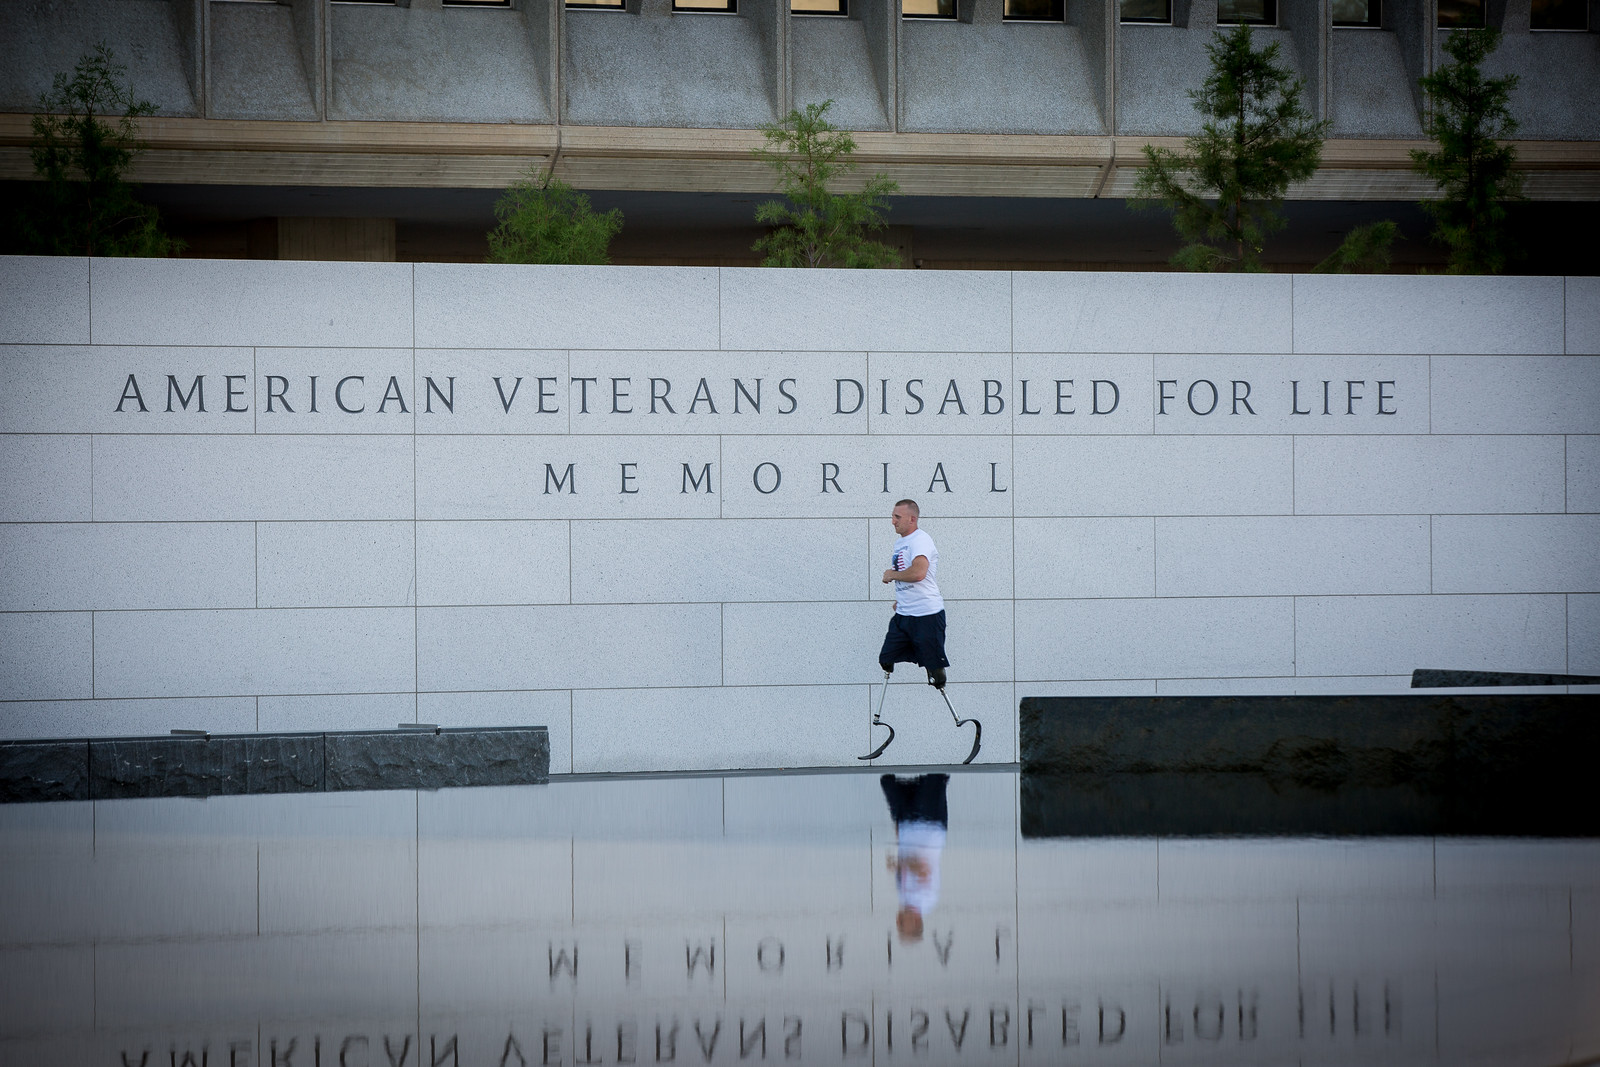 Rob Jones trains for his 31 marathons in 31 days at the American Veterans Disabled for Life Memorial, Washington DC.